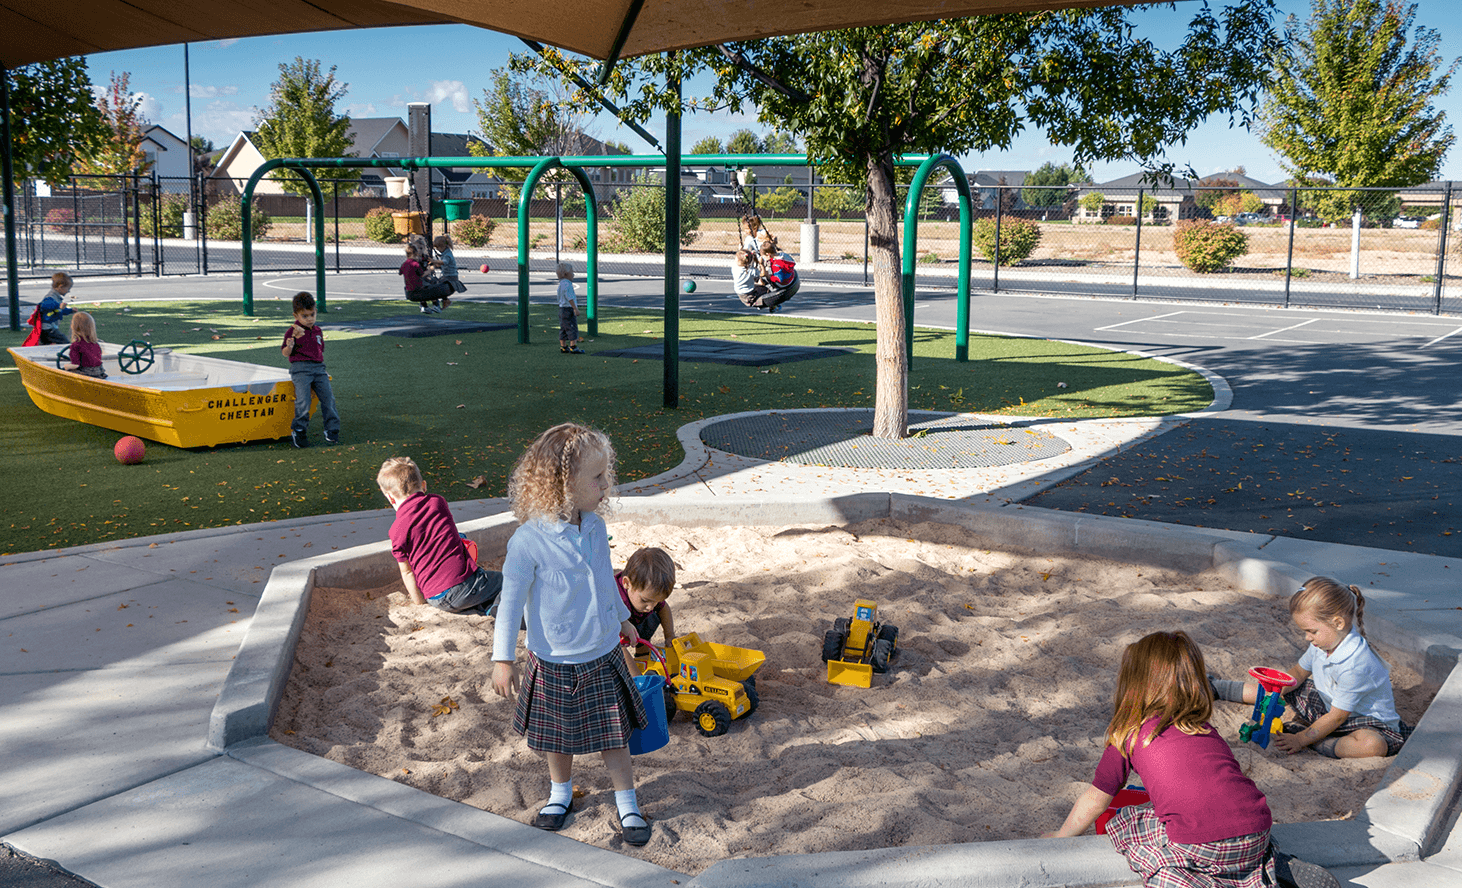 Playground Sandbox | Challenger School - Everest | Private School In Meridian, Idaho